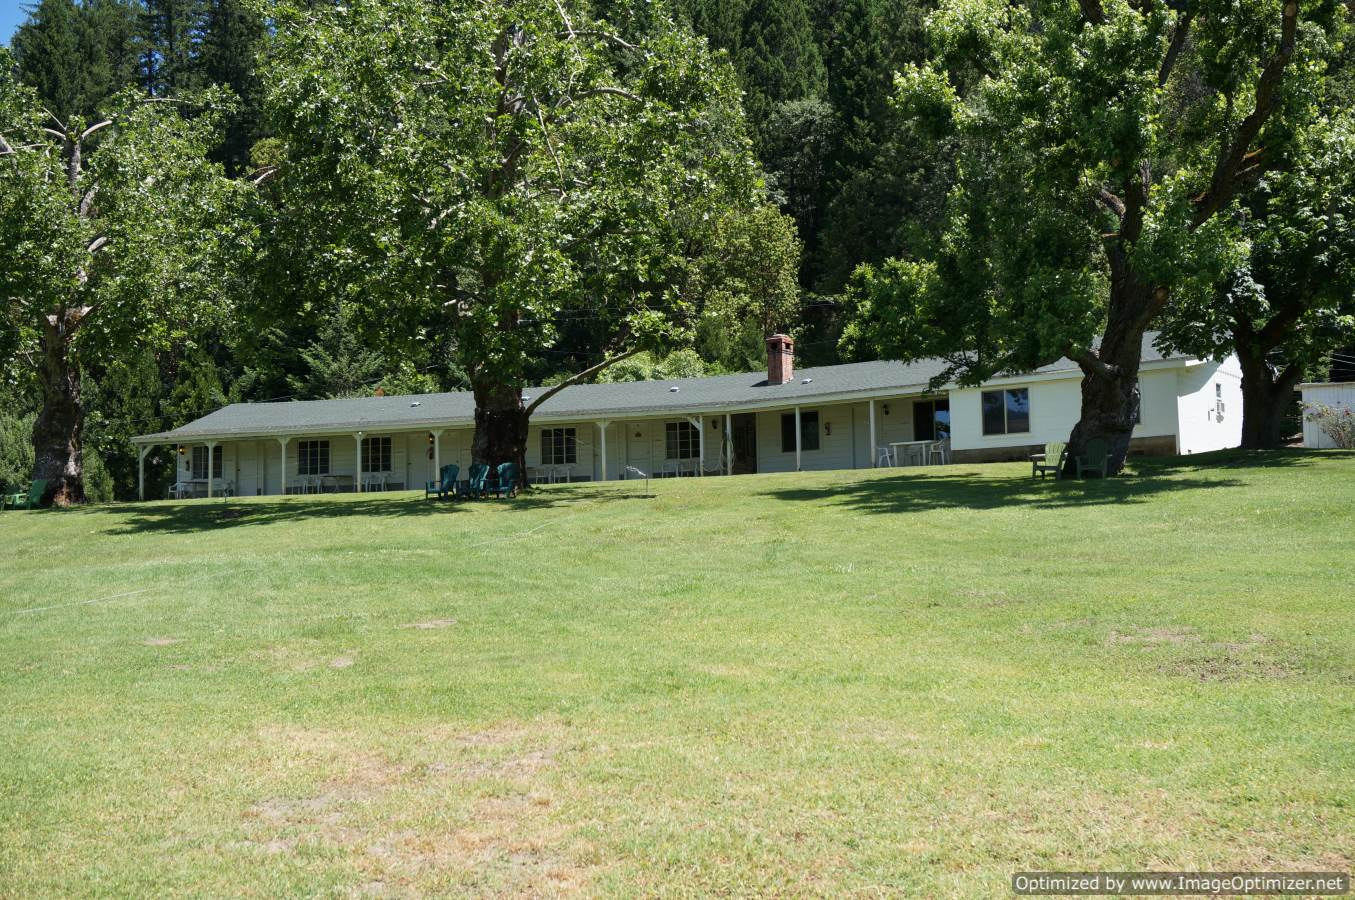 California Riverfront Hotels and Motels for sale, Siskiyou